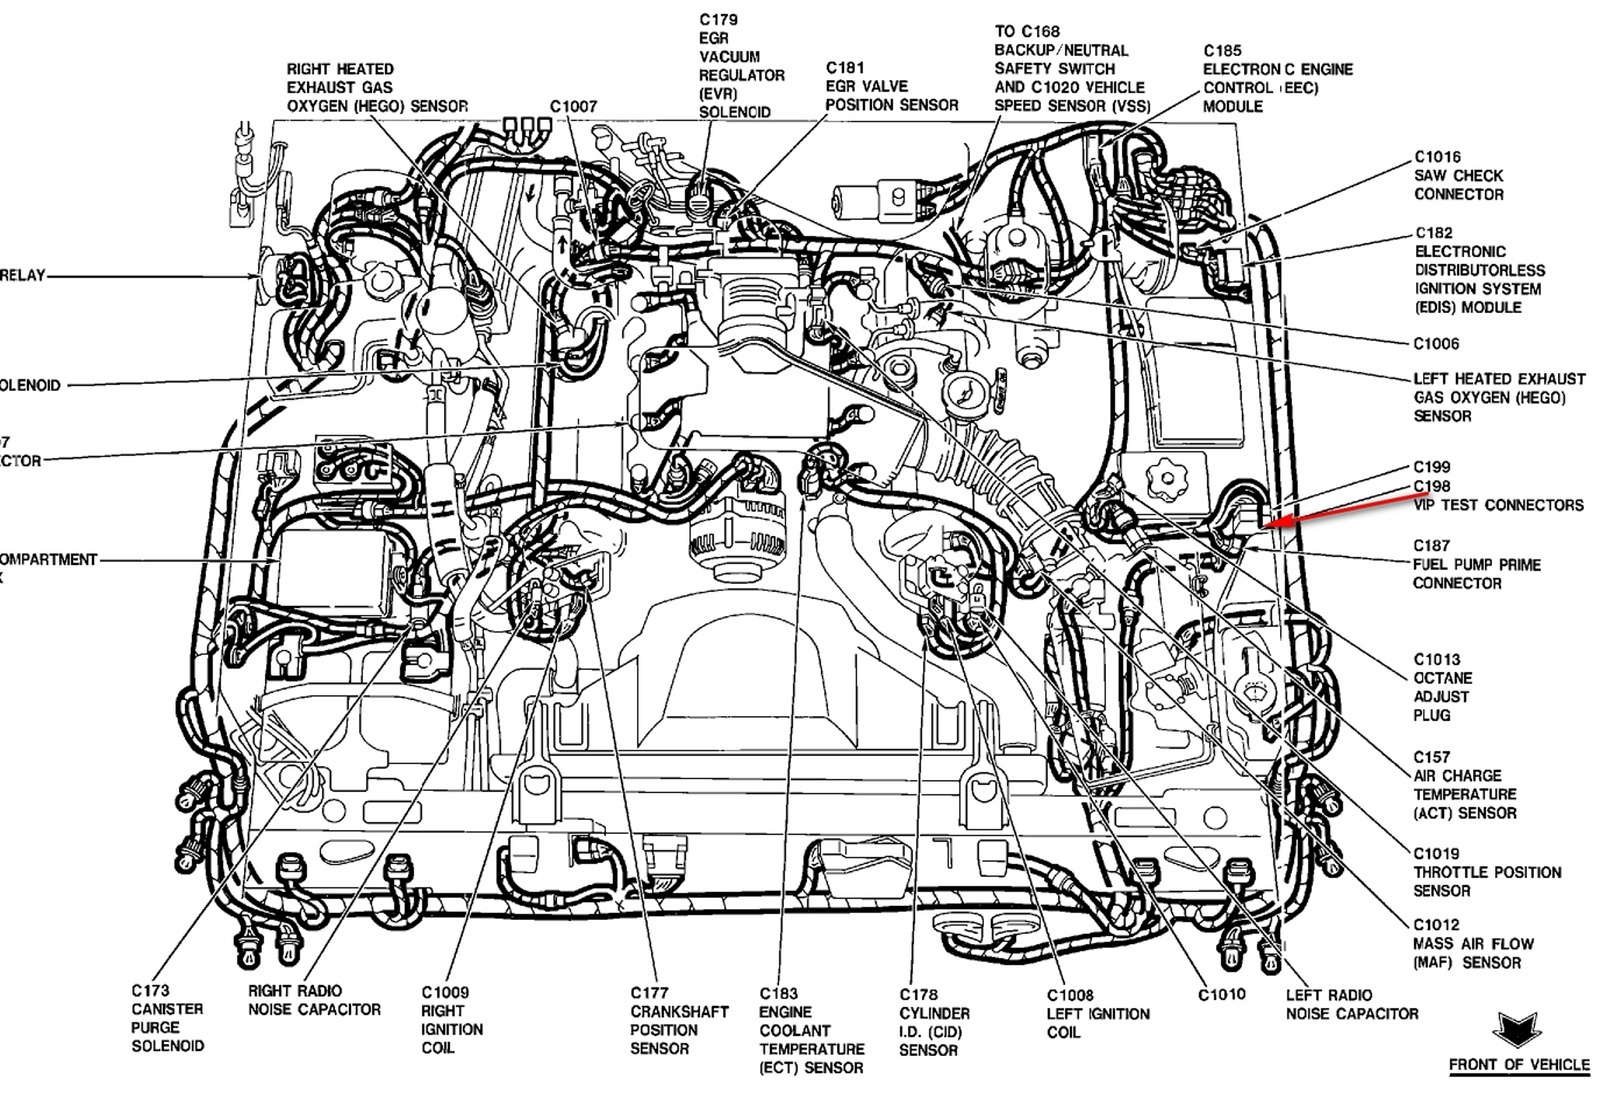 Discussion T16270 ds545905 likewise 2000 Mazda 626 Blower Wiring Diagram further 355531 Clari  2002 Cadillac besides 1990 Cadillac Brougham Radio Wiring Diagram besides Cadillac Seville Mk5 Fifth Generation 2000 2004 Fuse Box Diagram. on 99 cadillac eldorado fuse box diagram